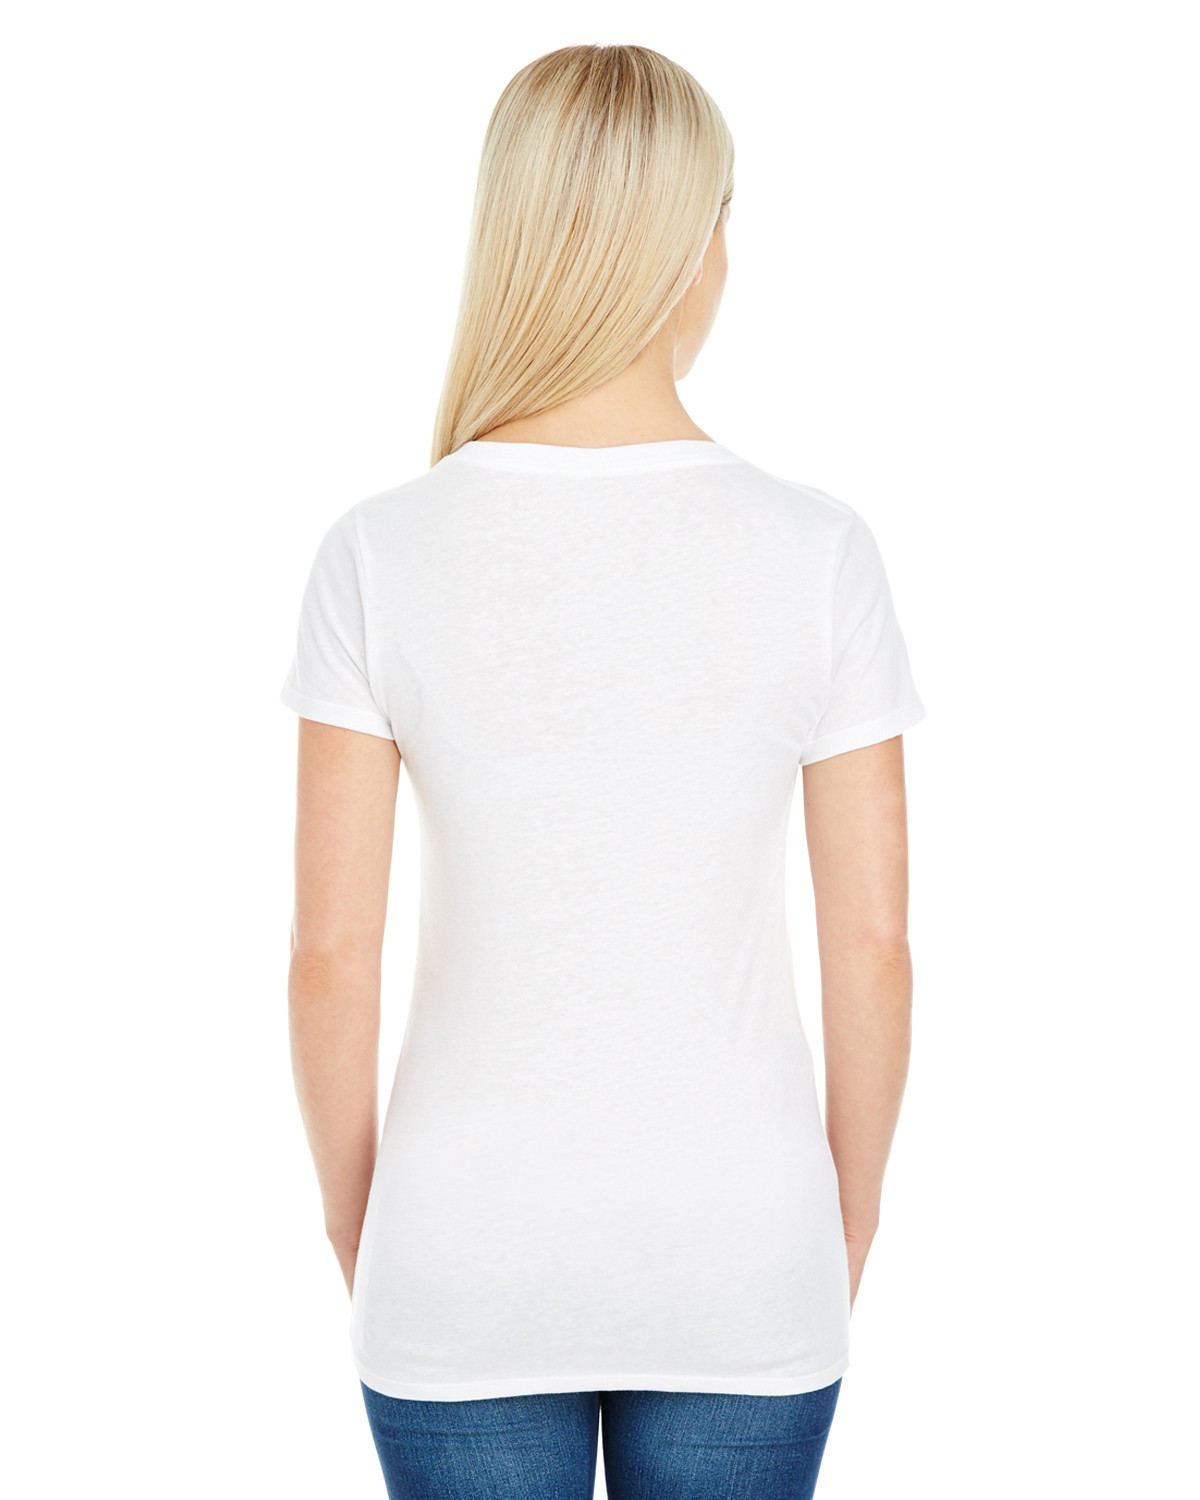 230B Threadfast Apparel WHITE